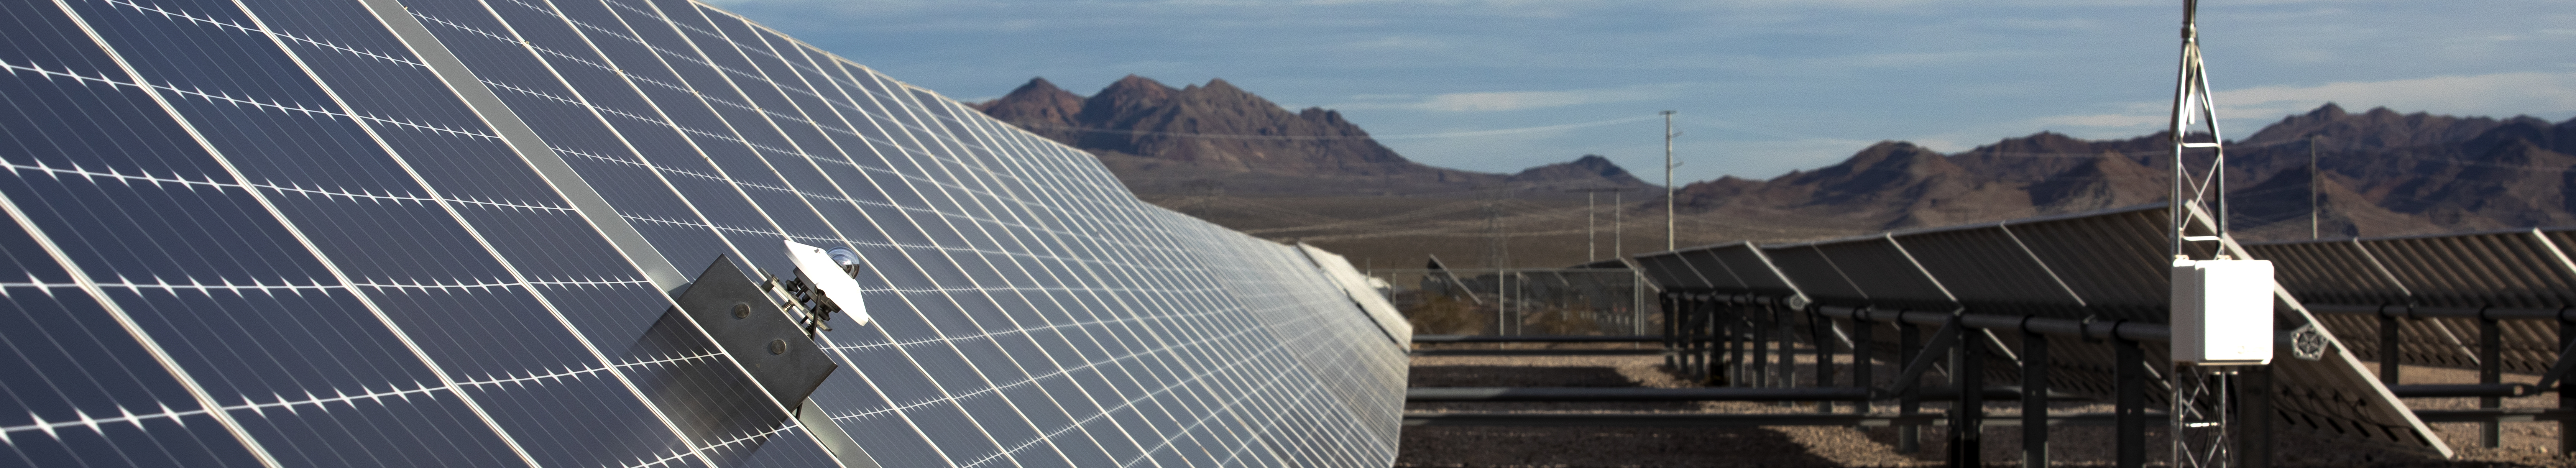 Solar Energy Systems for site assessment, performance monitoring, and advanced solar monitoring